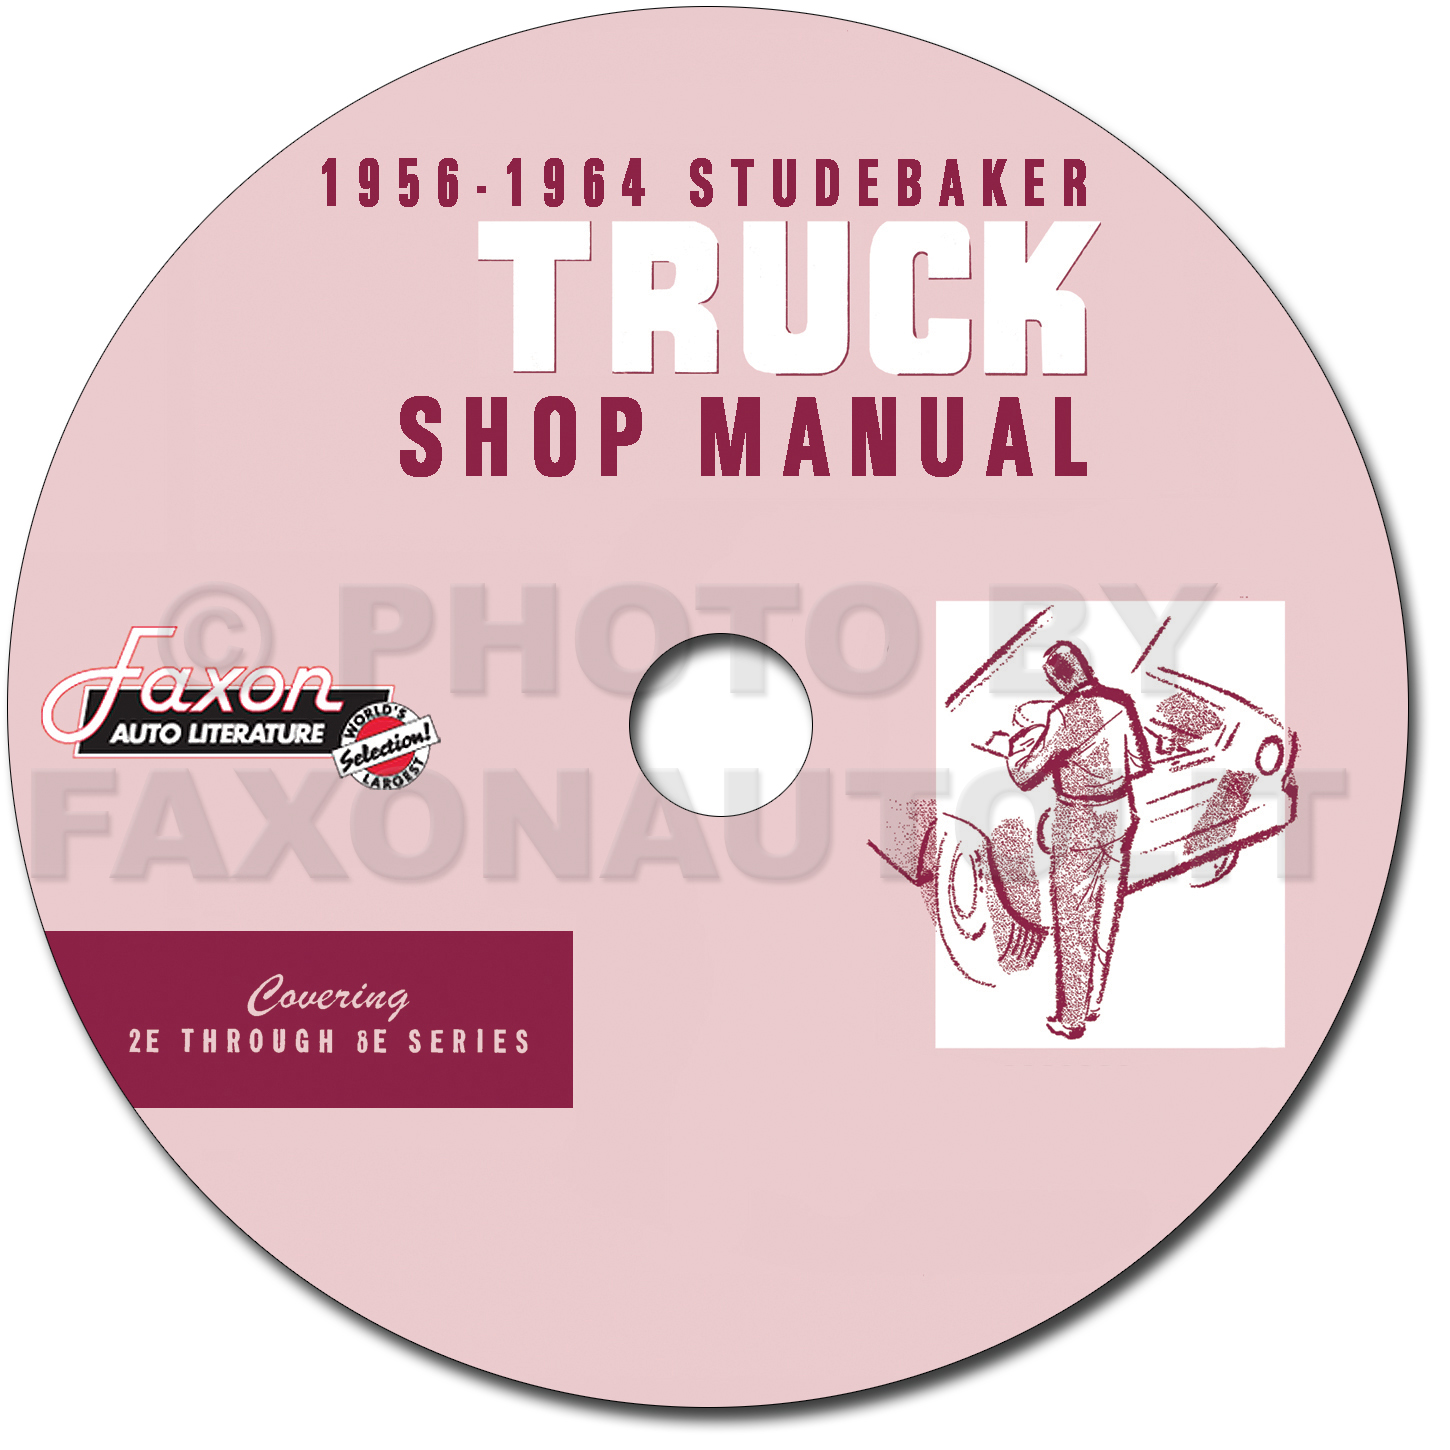 1956-1964 Studebaker Pickup Truck Repair Shop Manual on CD-ROM